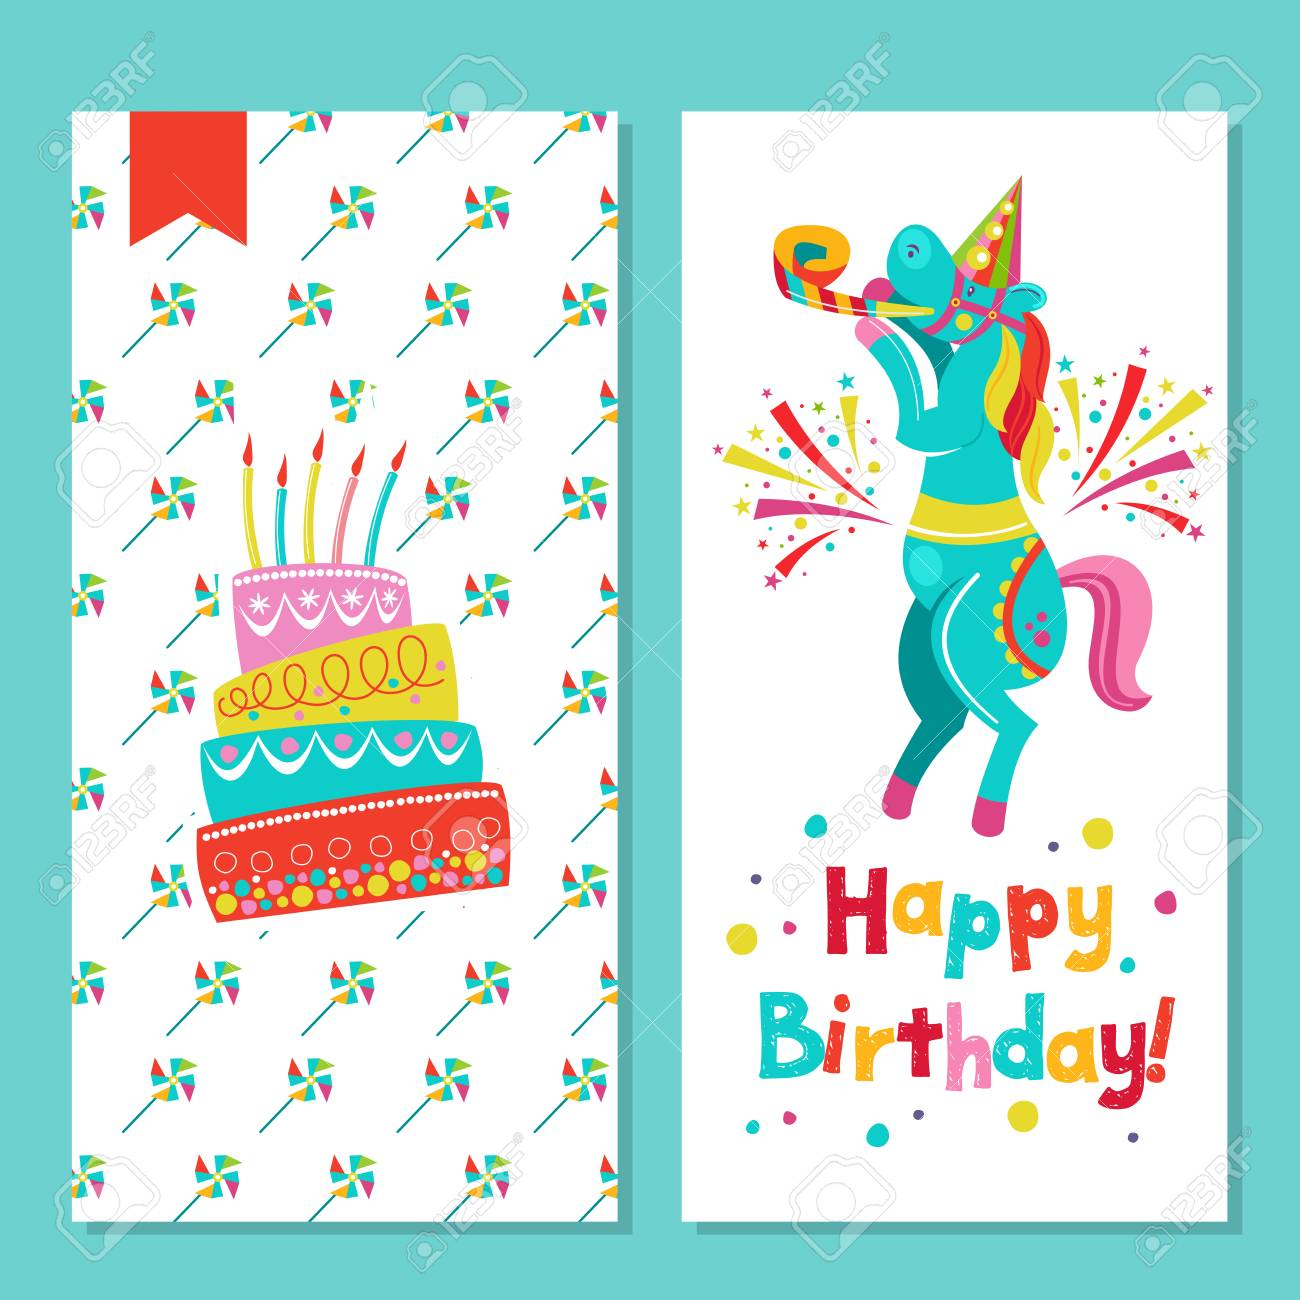 Happy Birthday Greeting Card With Cake And Funny Circus Horse Royalty Free Cliparts Vectors And Stock Illustration Image 97826751